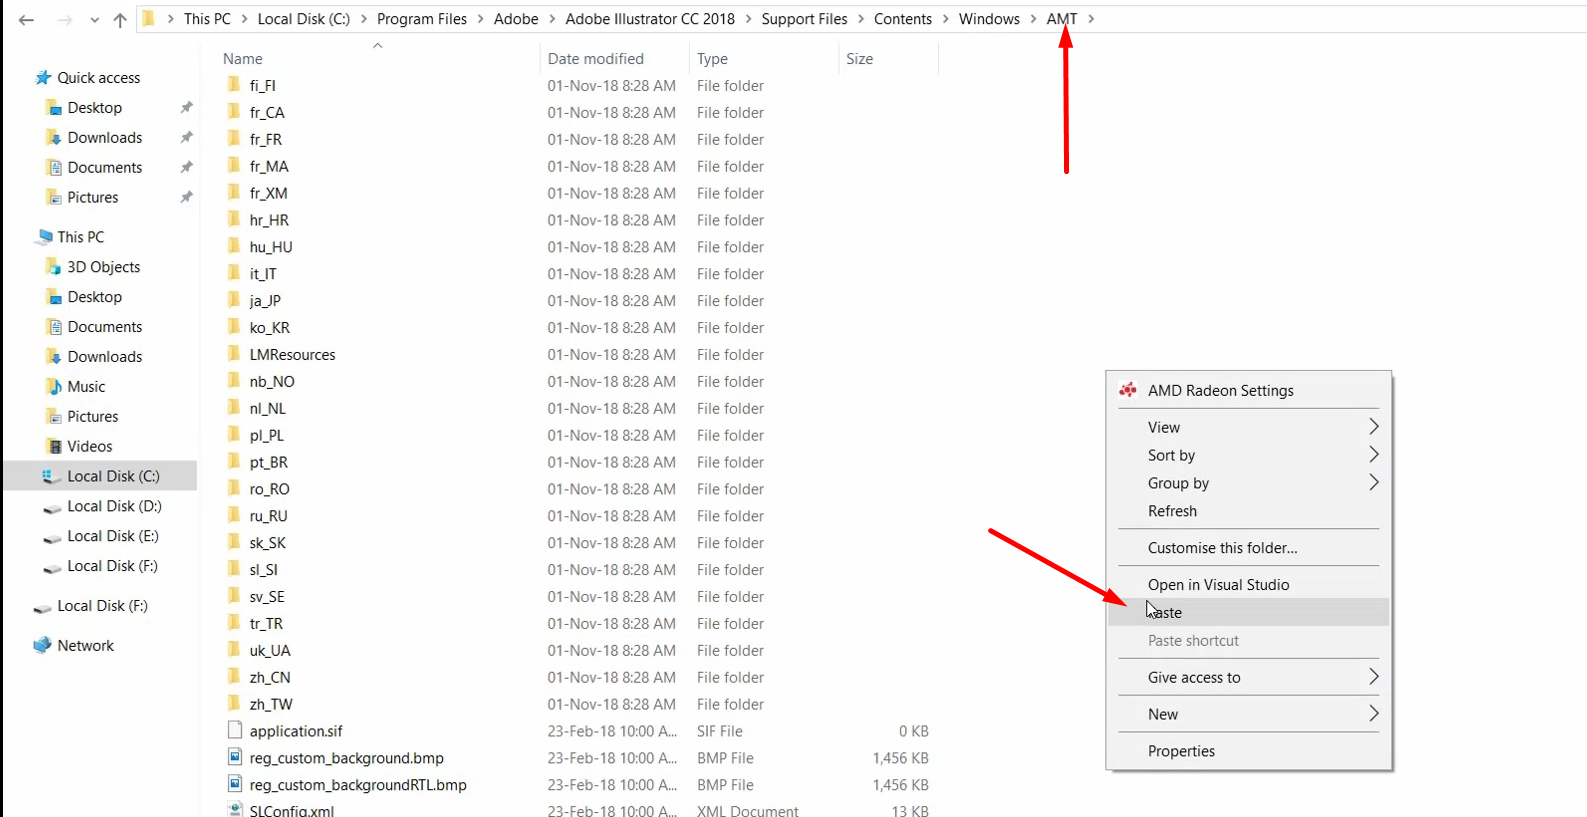 How to Extend Adobe Trial Period of Any Adobe Product